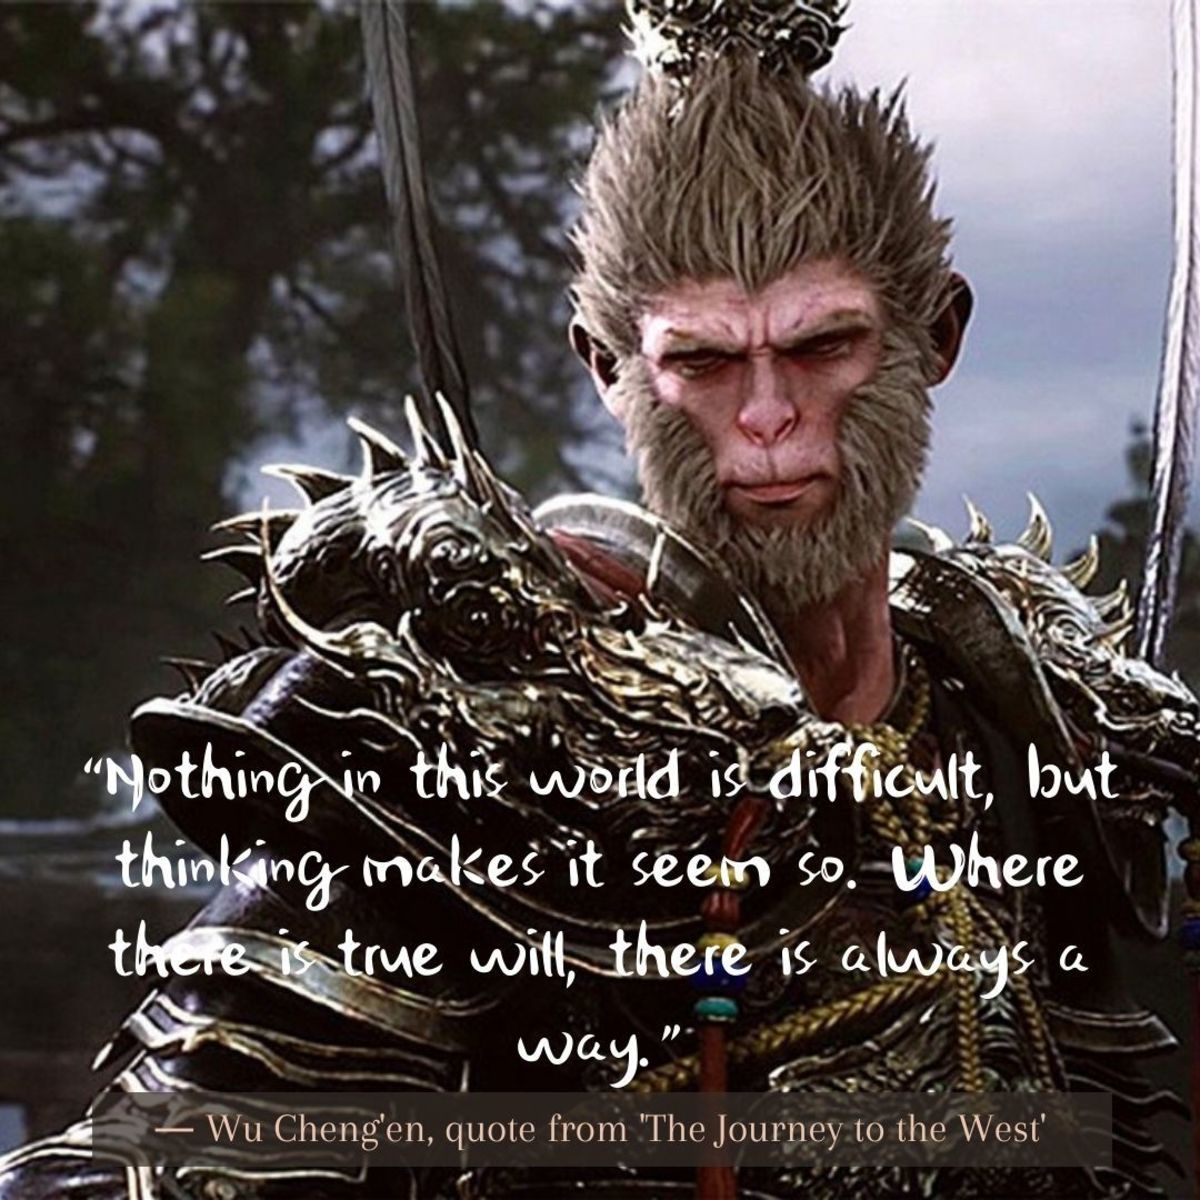 Monkey King Quotes by Wu Cheng'en taken from 'Journey to the West'